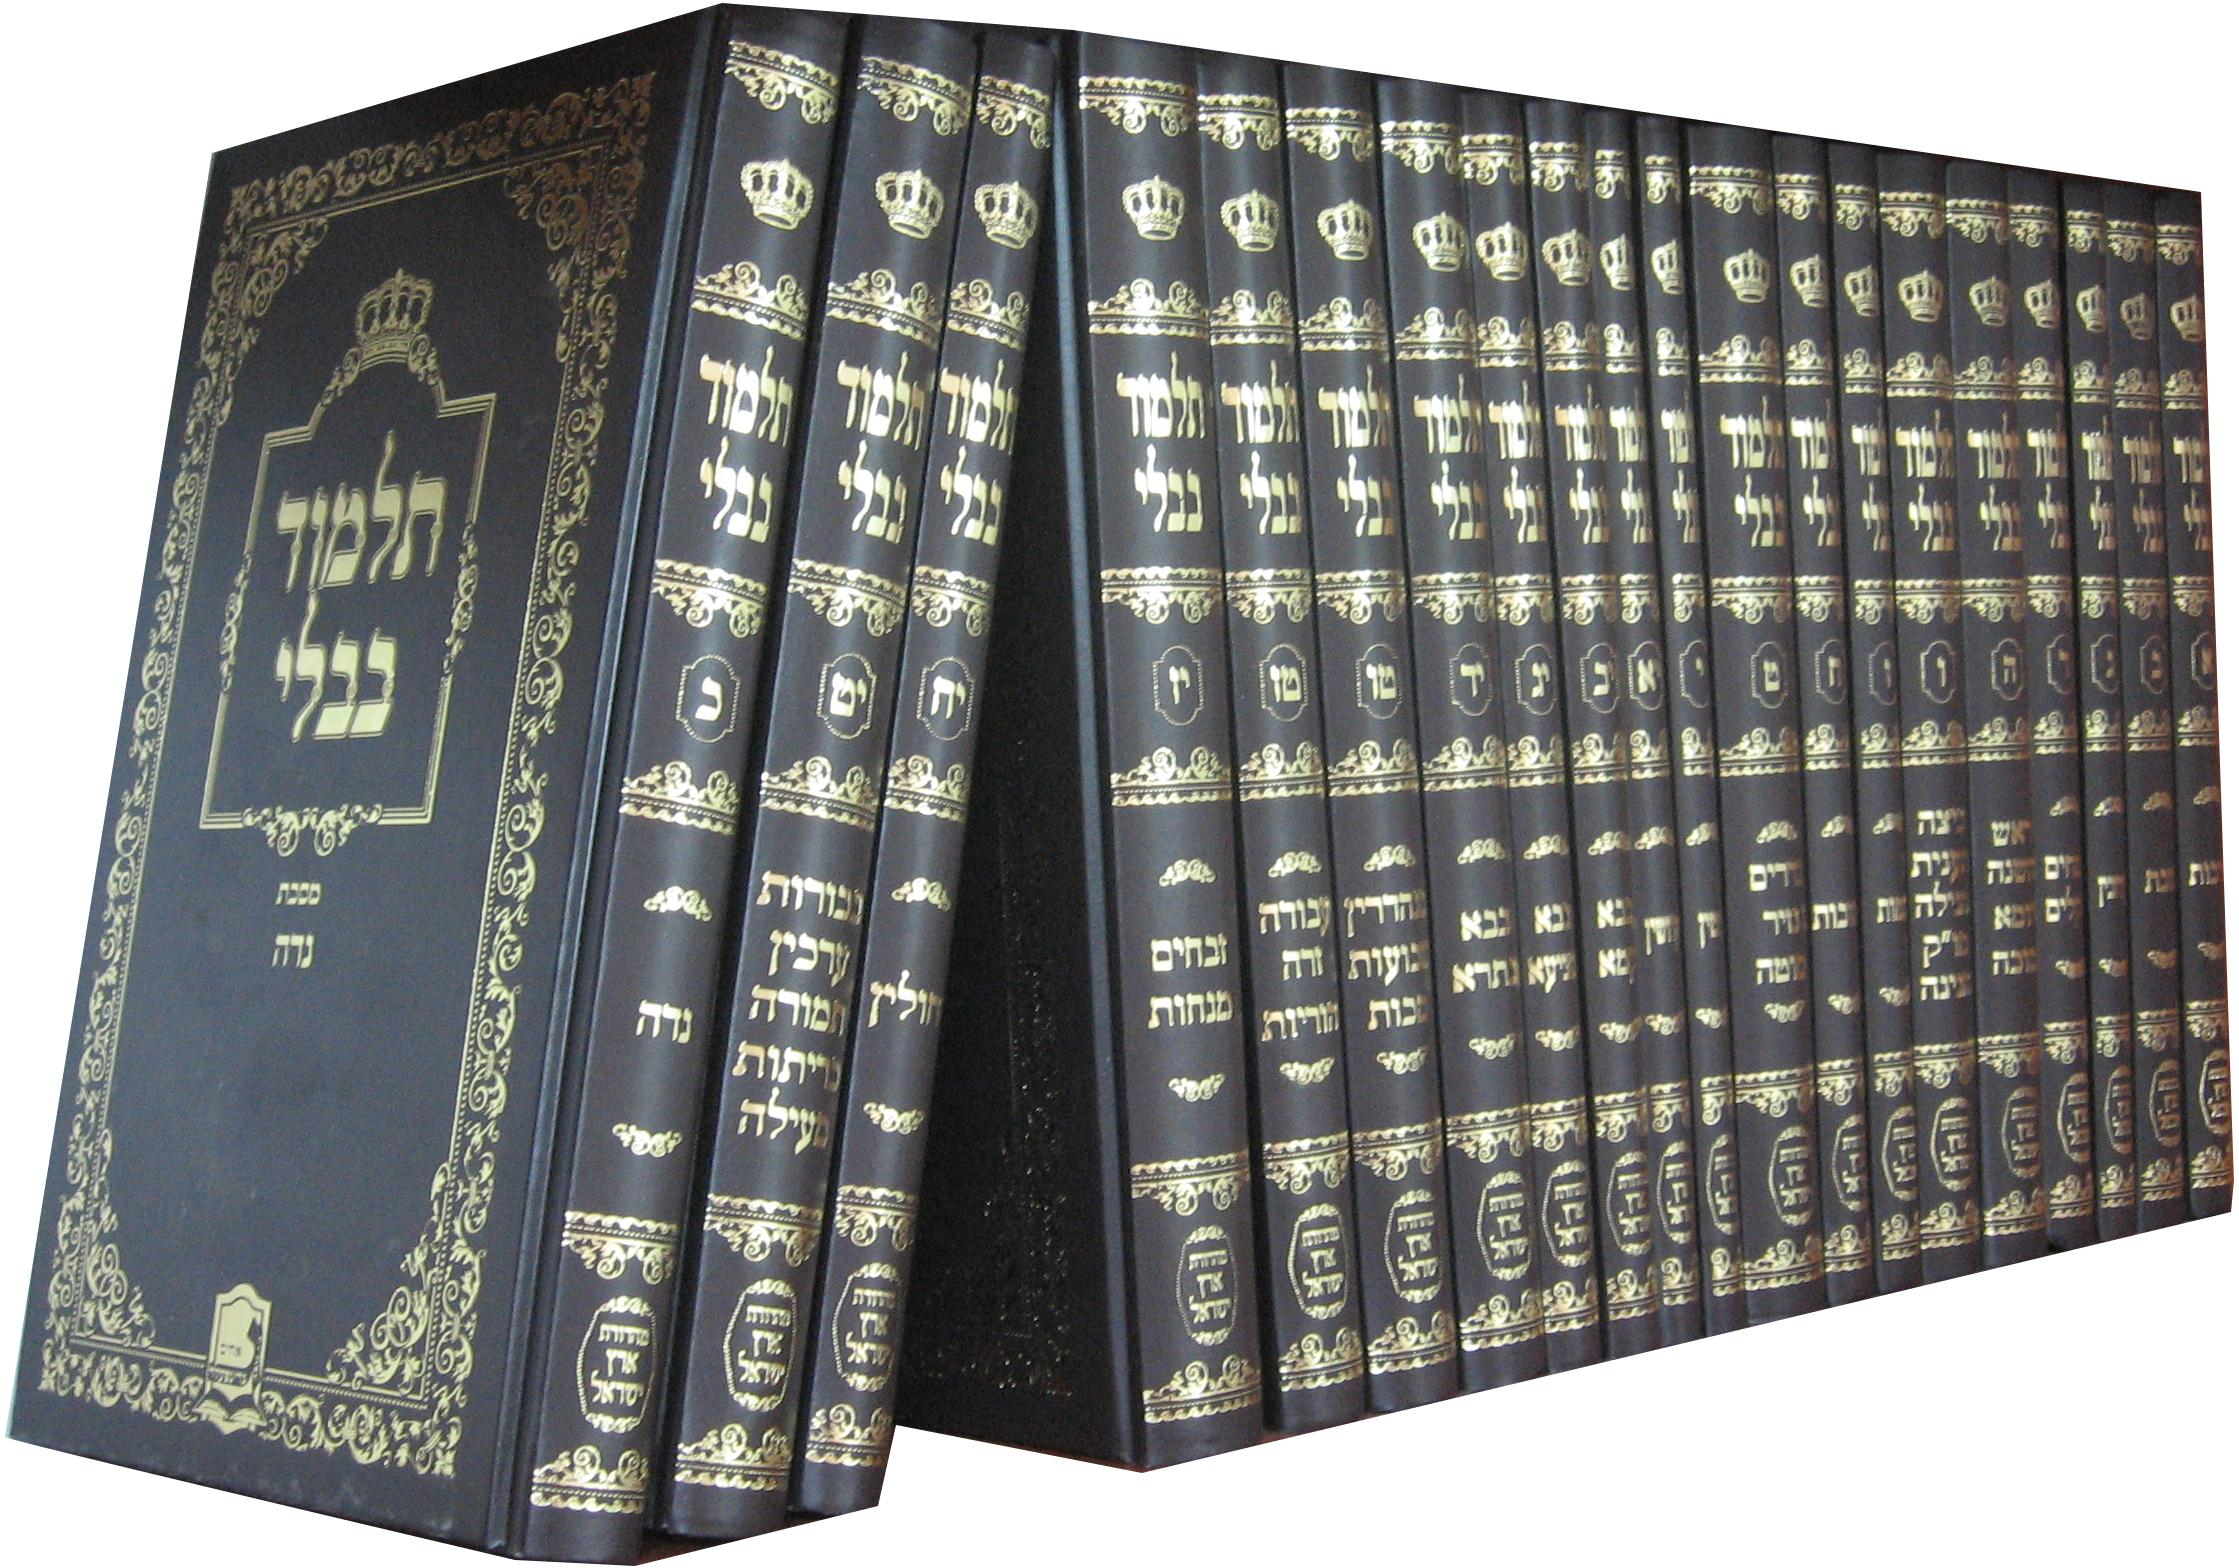 http://upload.wikimedia.org/wikipedia/commons/3/38/Talmud_set.JPG